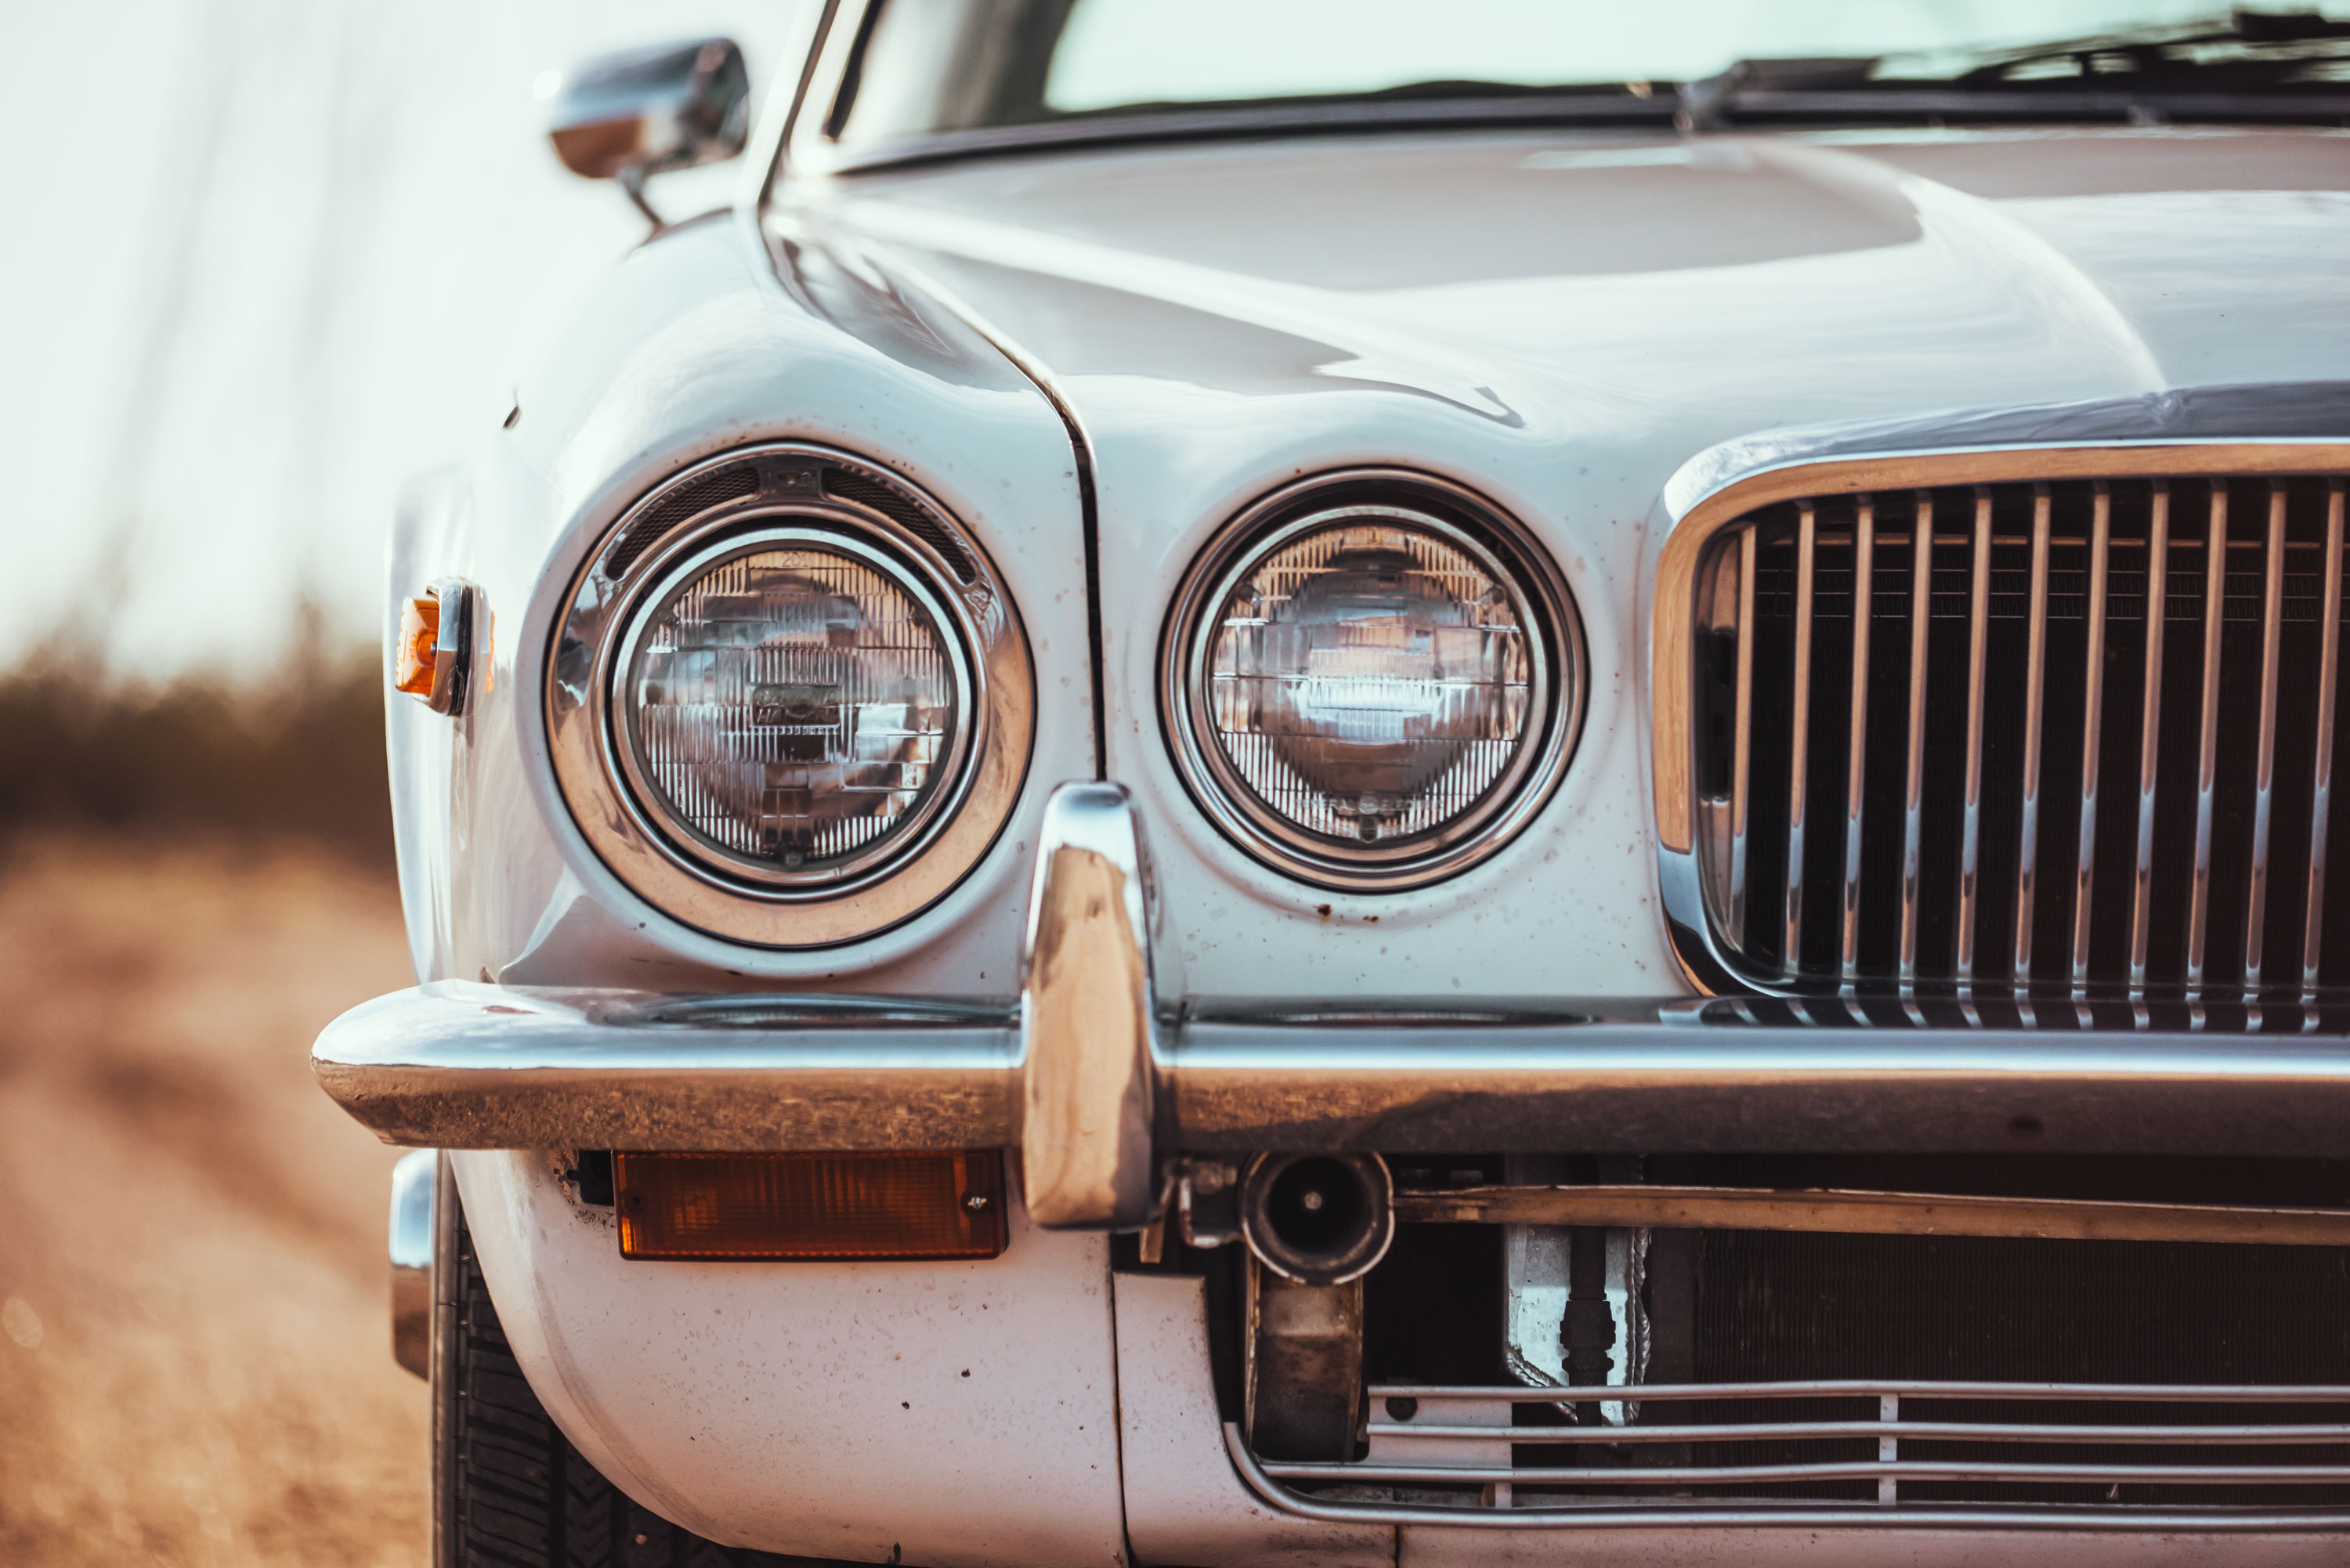 1974 Jaguar XJ6 headlight detail